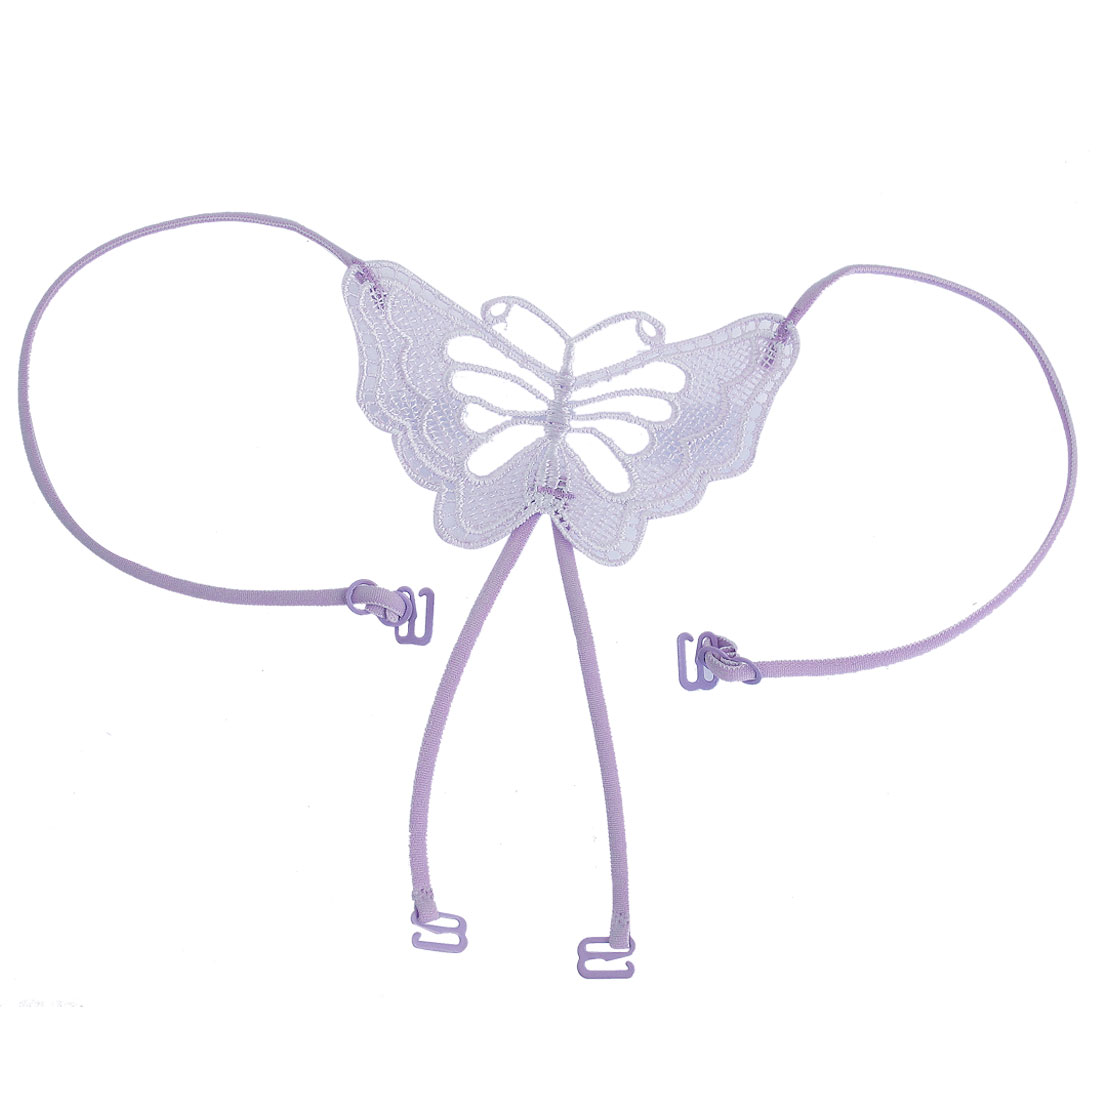 Light Purple Butterfly Design Stretchy Cross Back Bra Strap for Ladies